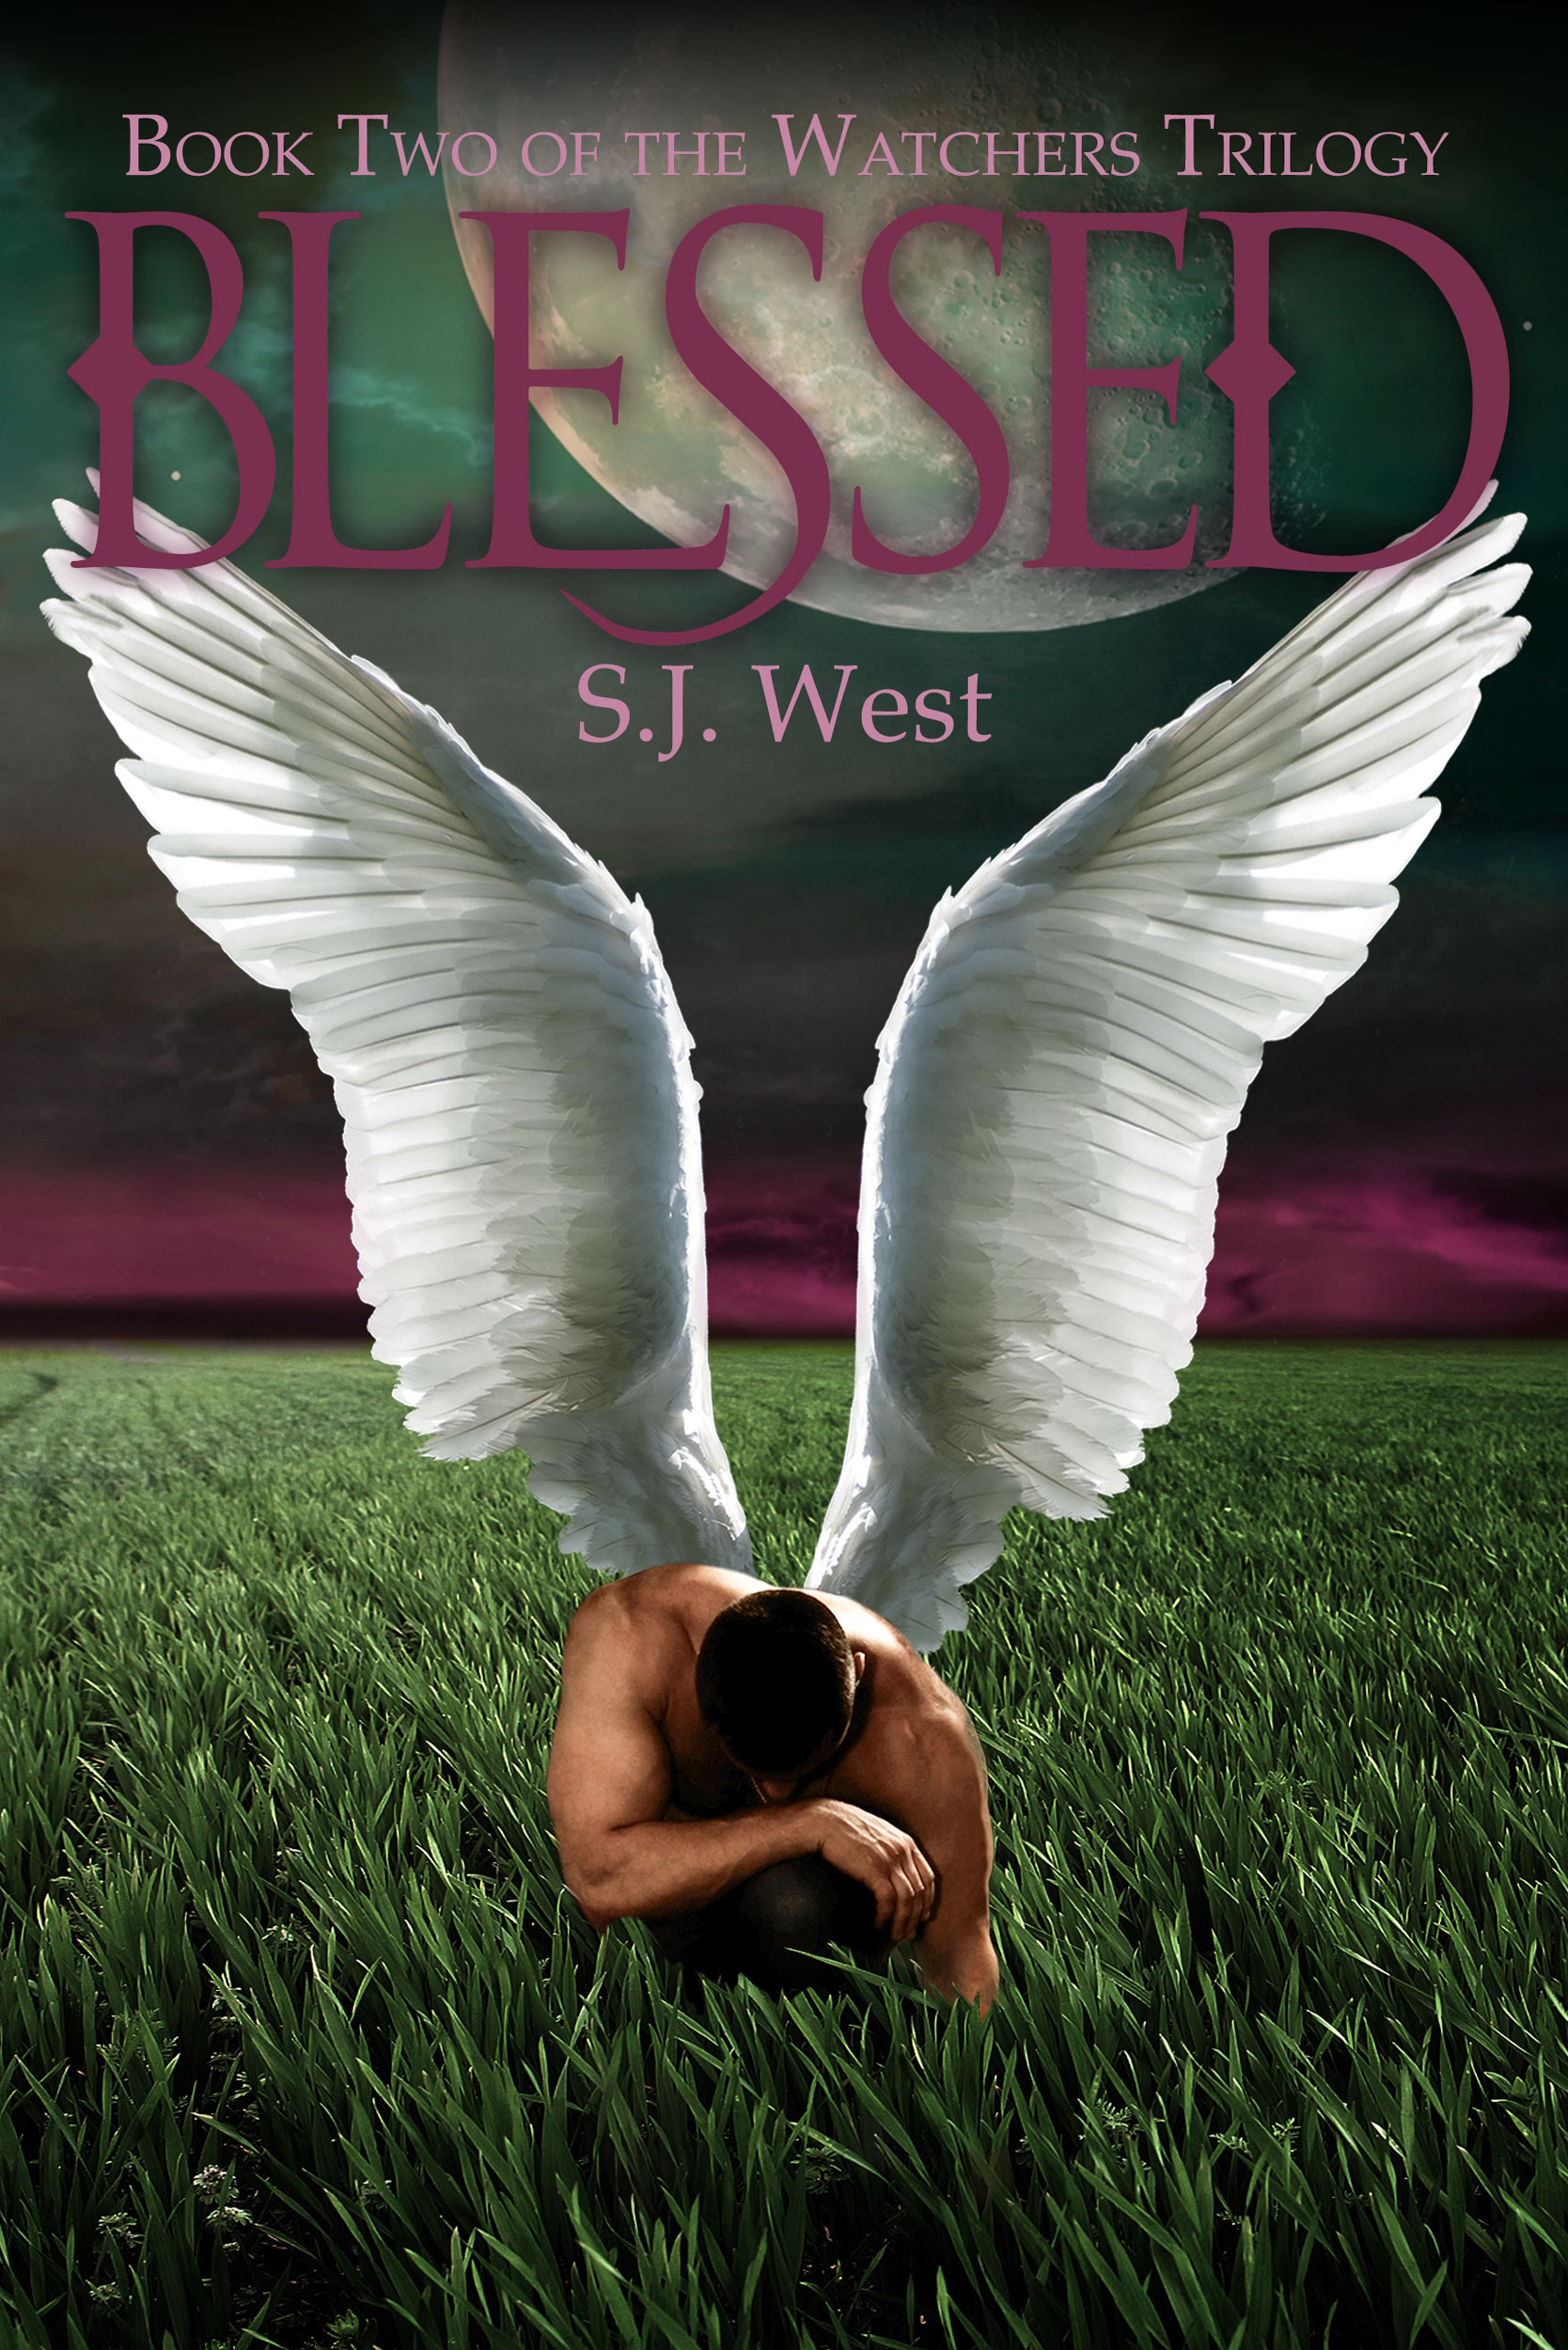 S.J. West - Blessed (Book 2, The Watchers Trilogy)